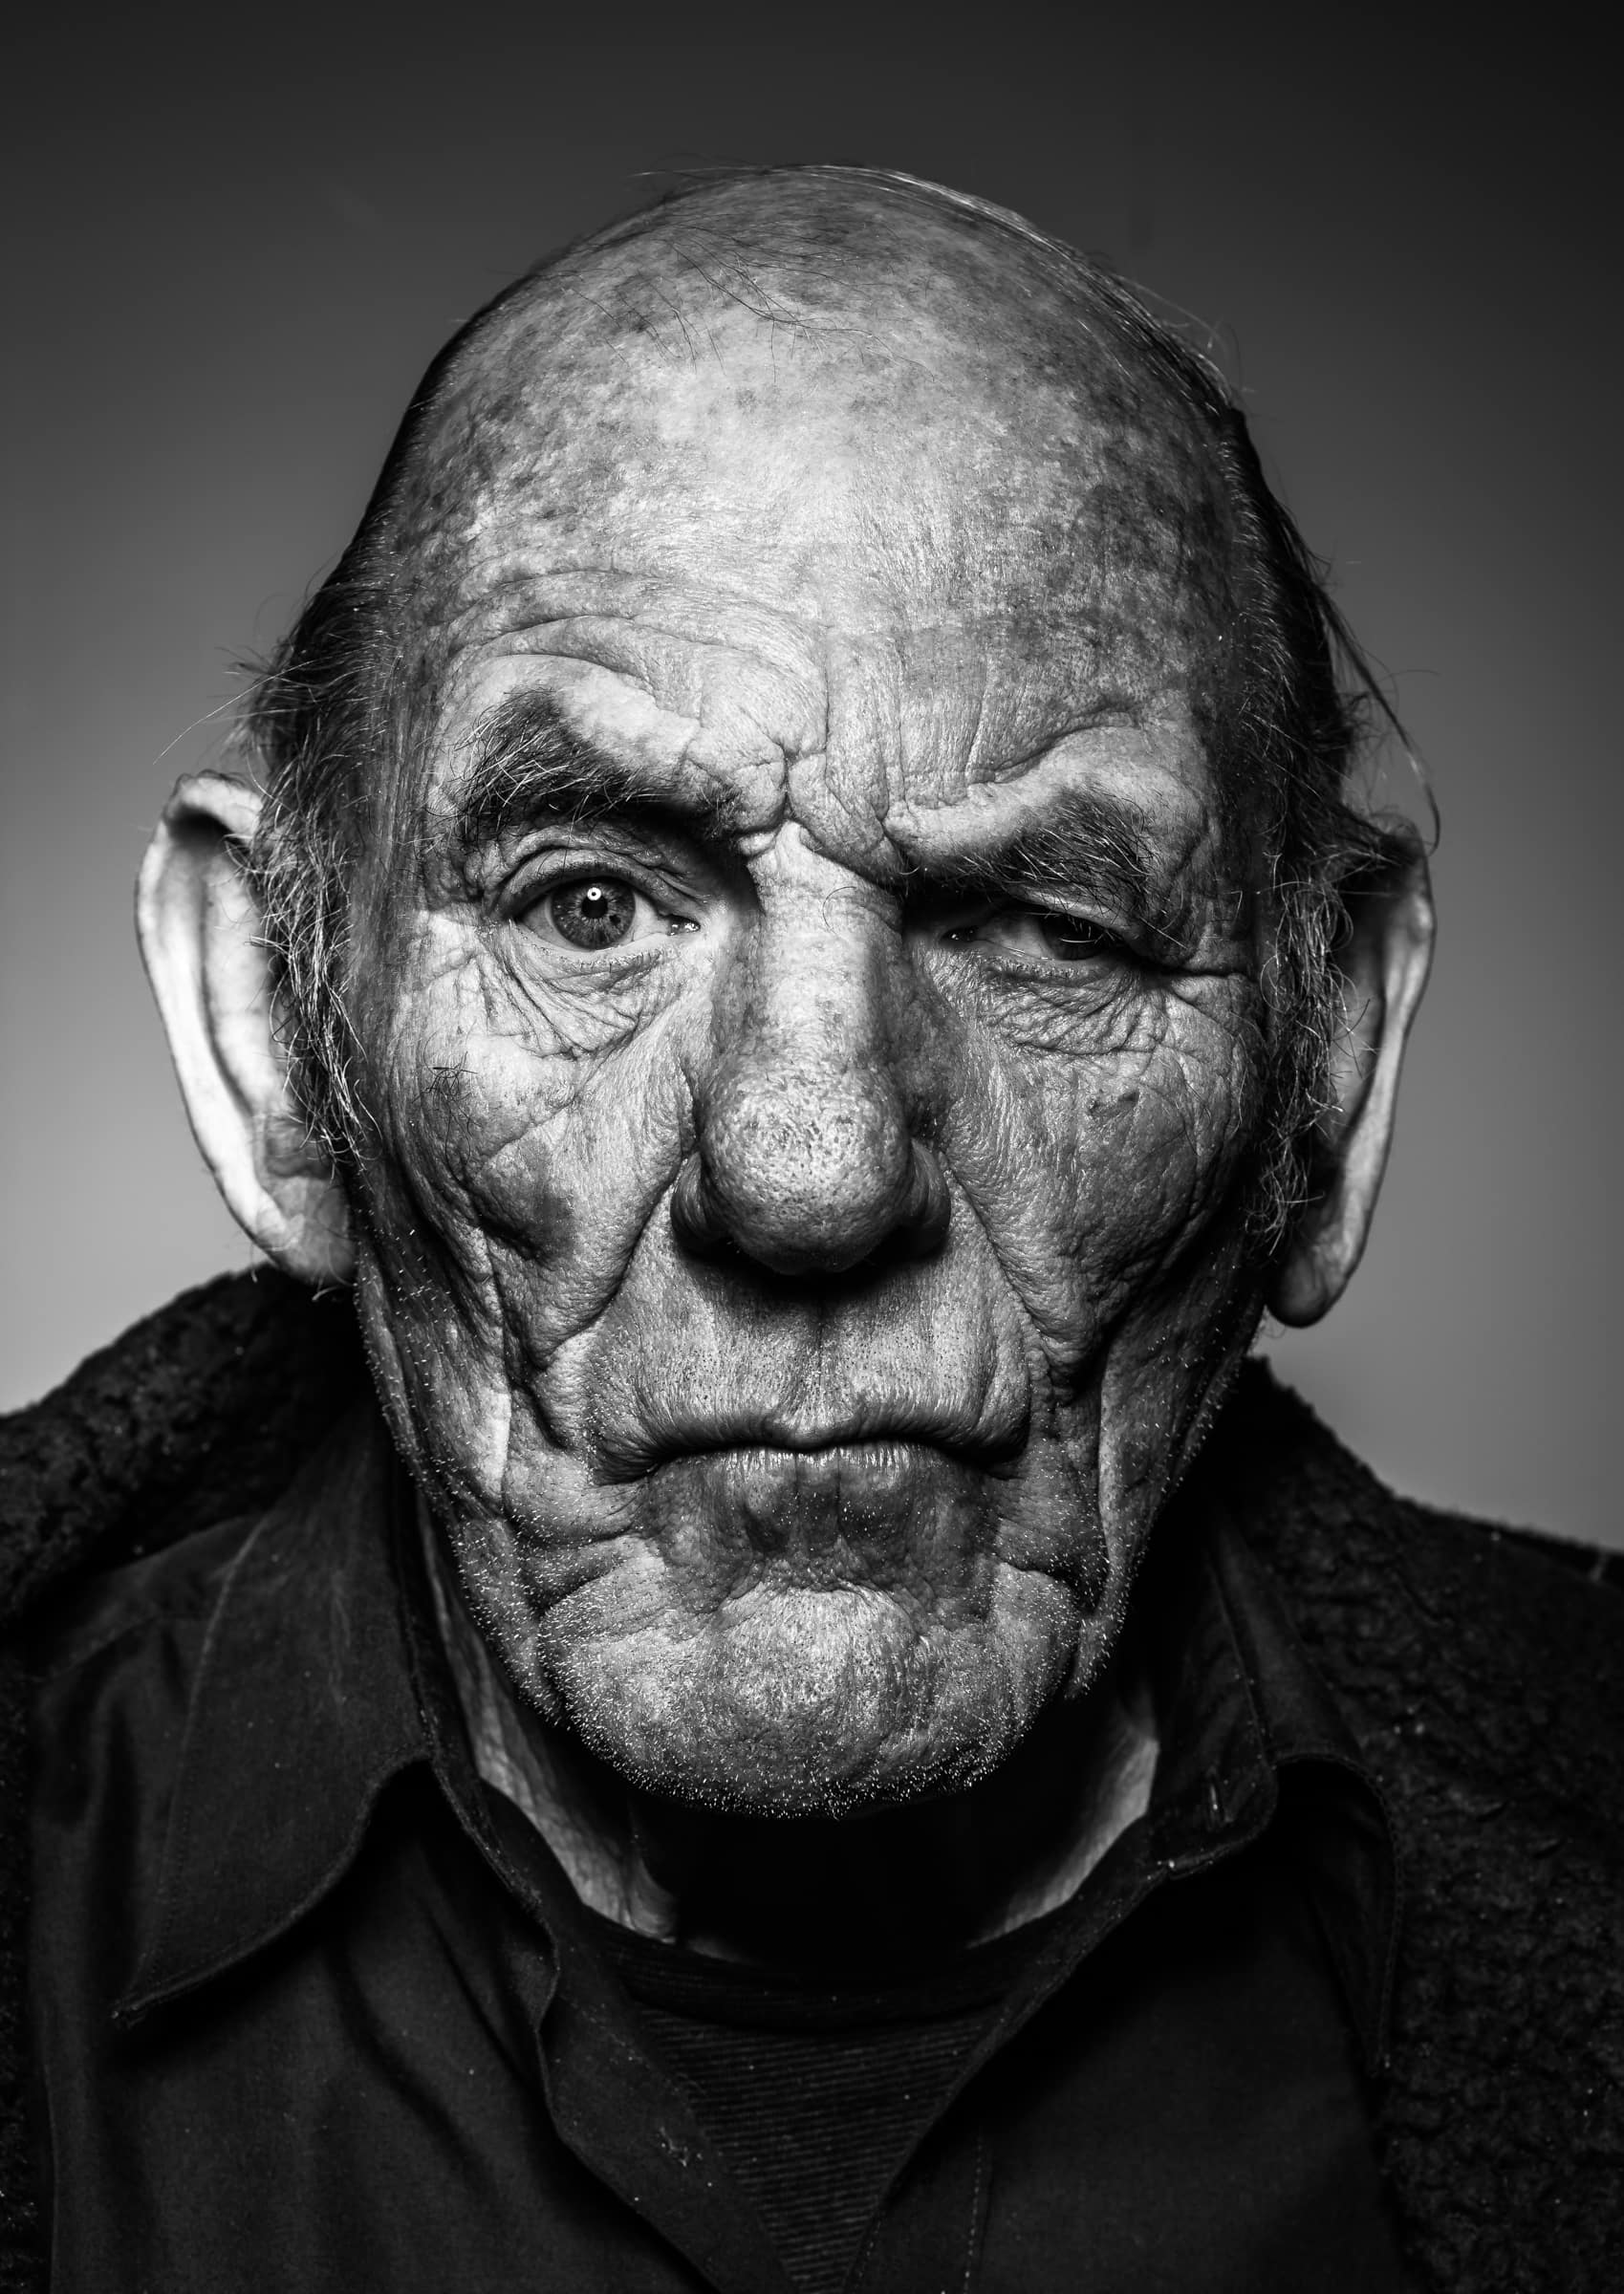 Portrait photography of an old face